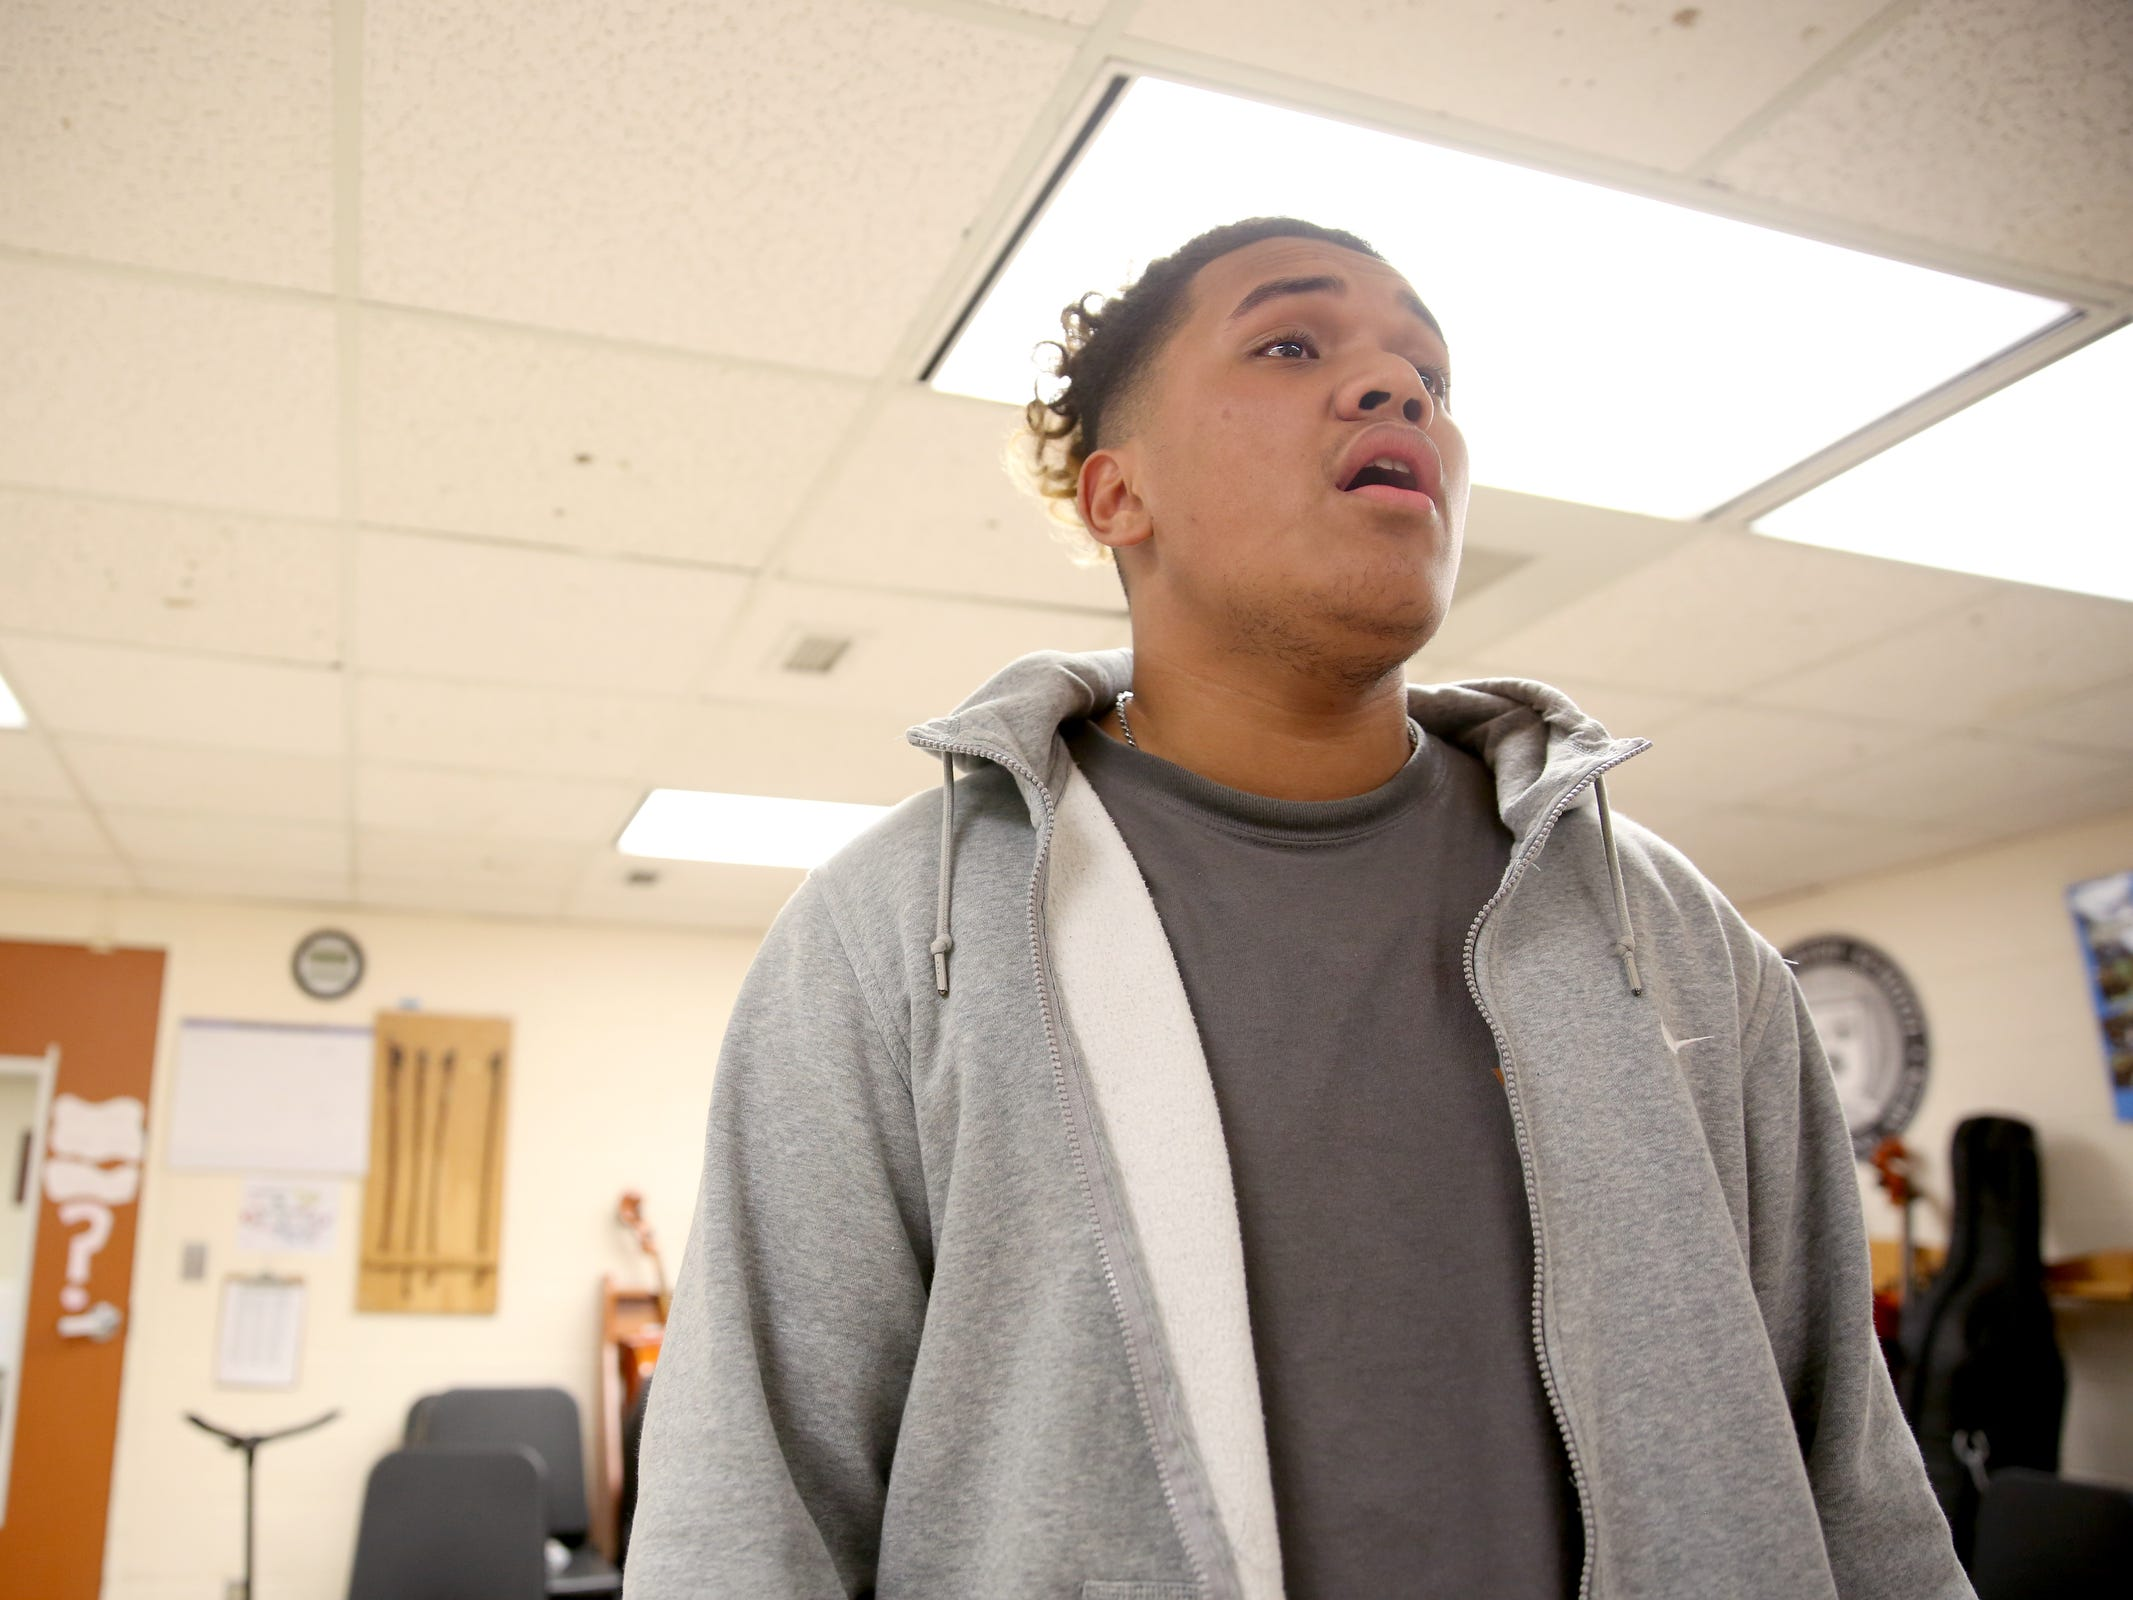 LJ Allise, a McKay senior, takes private singing lessons thanks to the Music Lessons Project which offers private or small group lessons to students in Title I schools. Photographed at McKay High School in Salem on April 17, 2019.